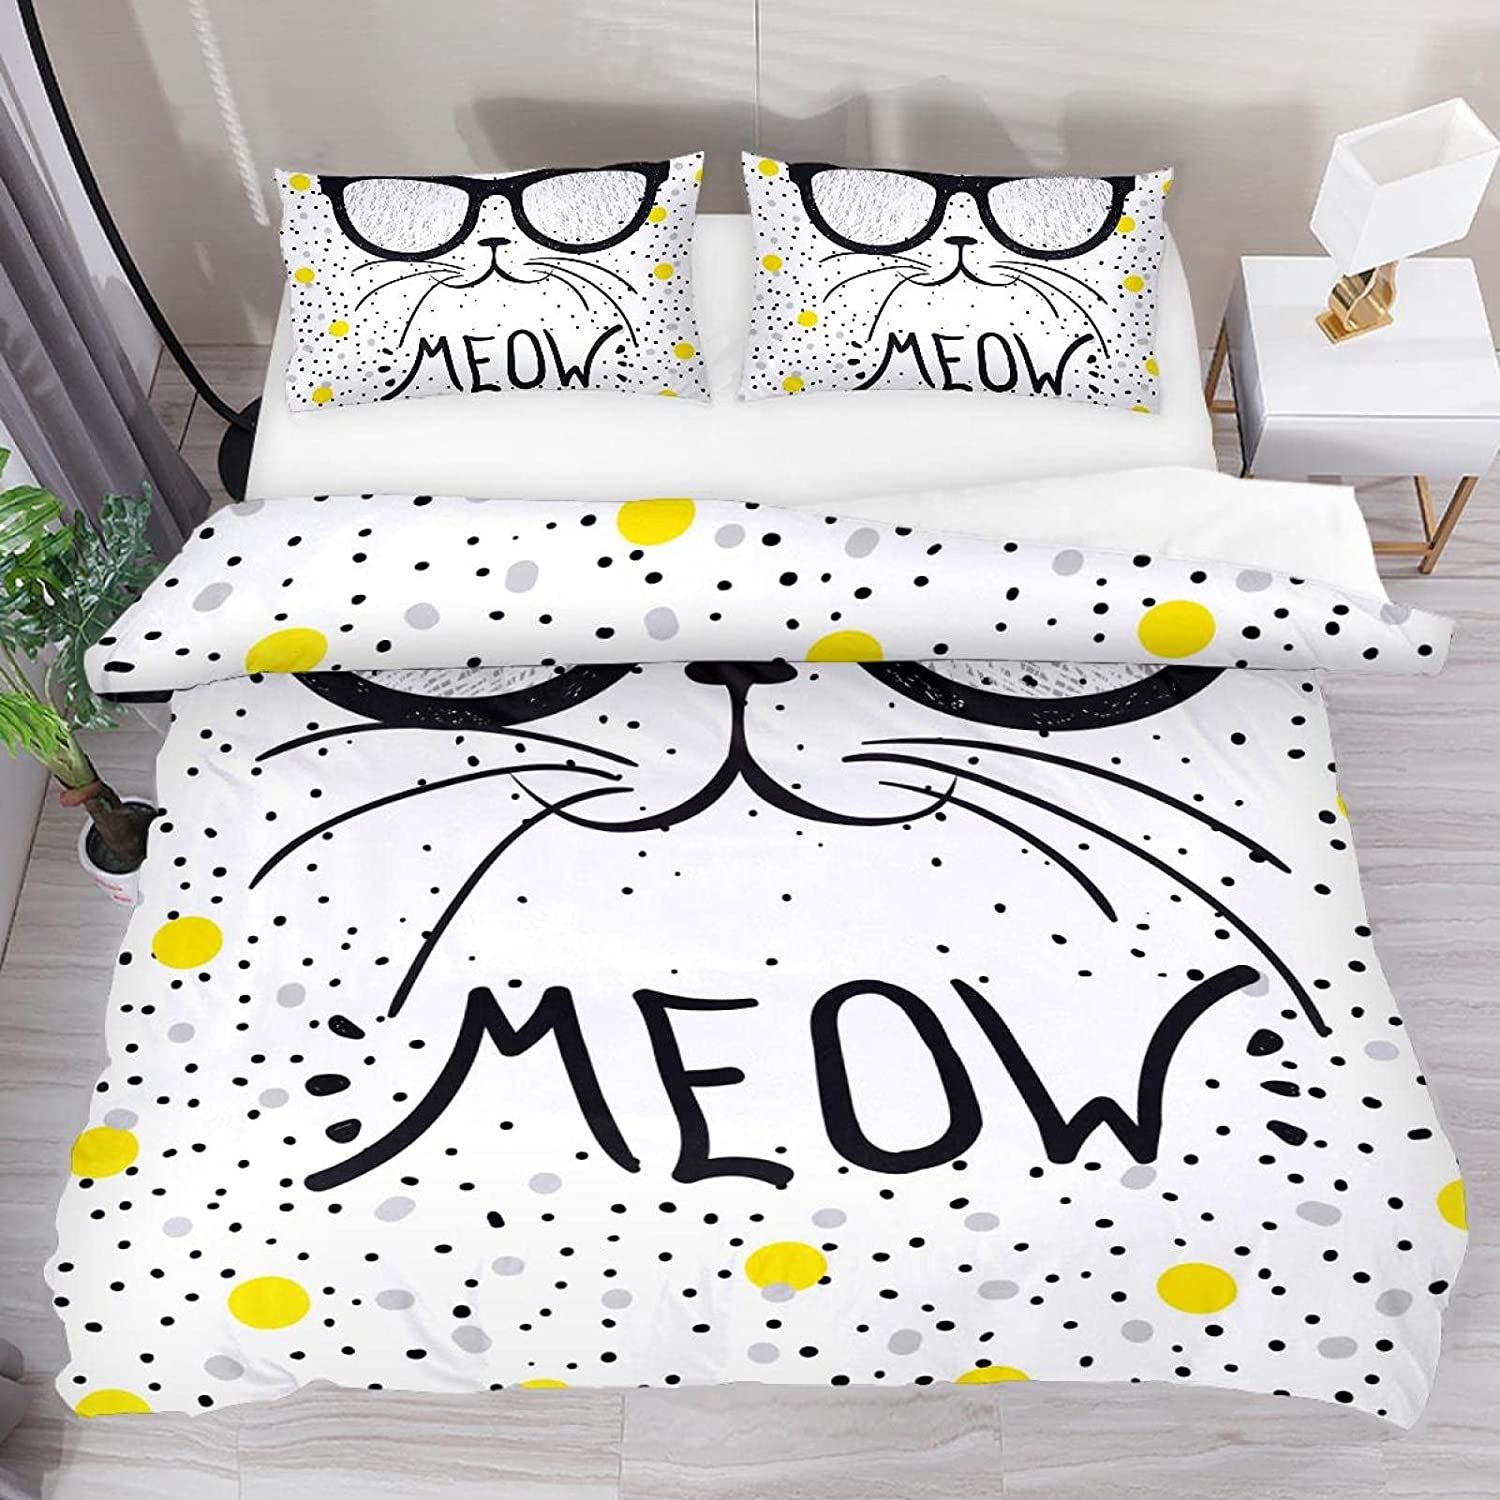 Josid Queen Bedding Duvet Cover 3 Piece Cat Now free shipping Animal Quilt Max 47% OFF Set Co